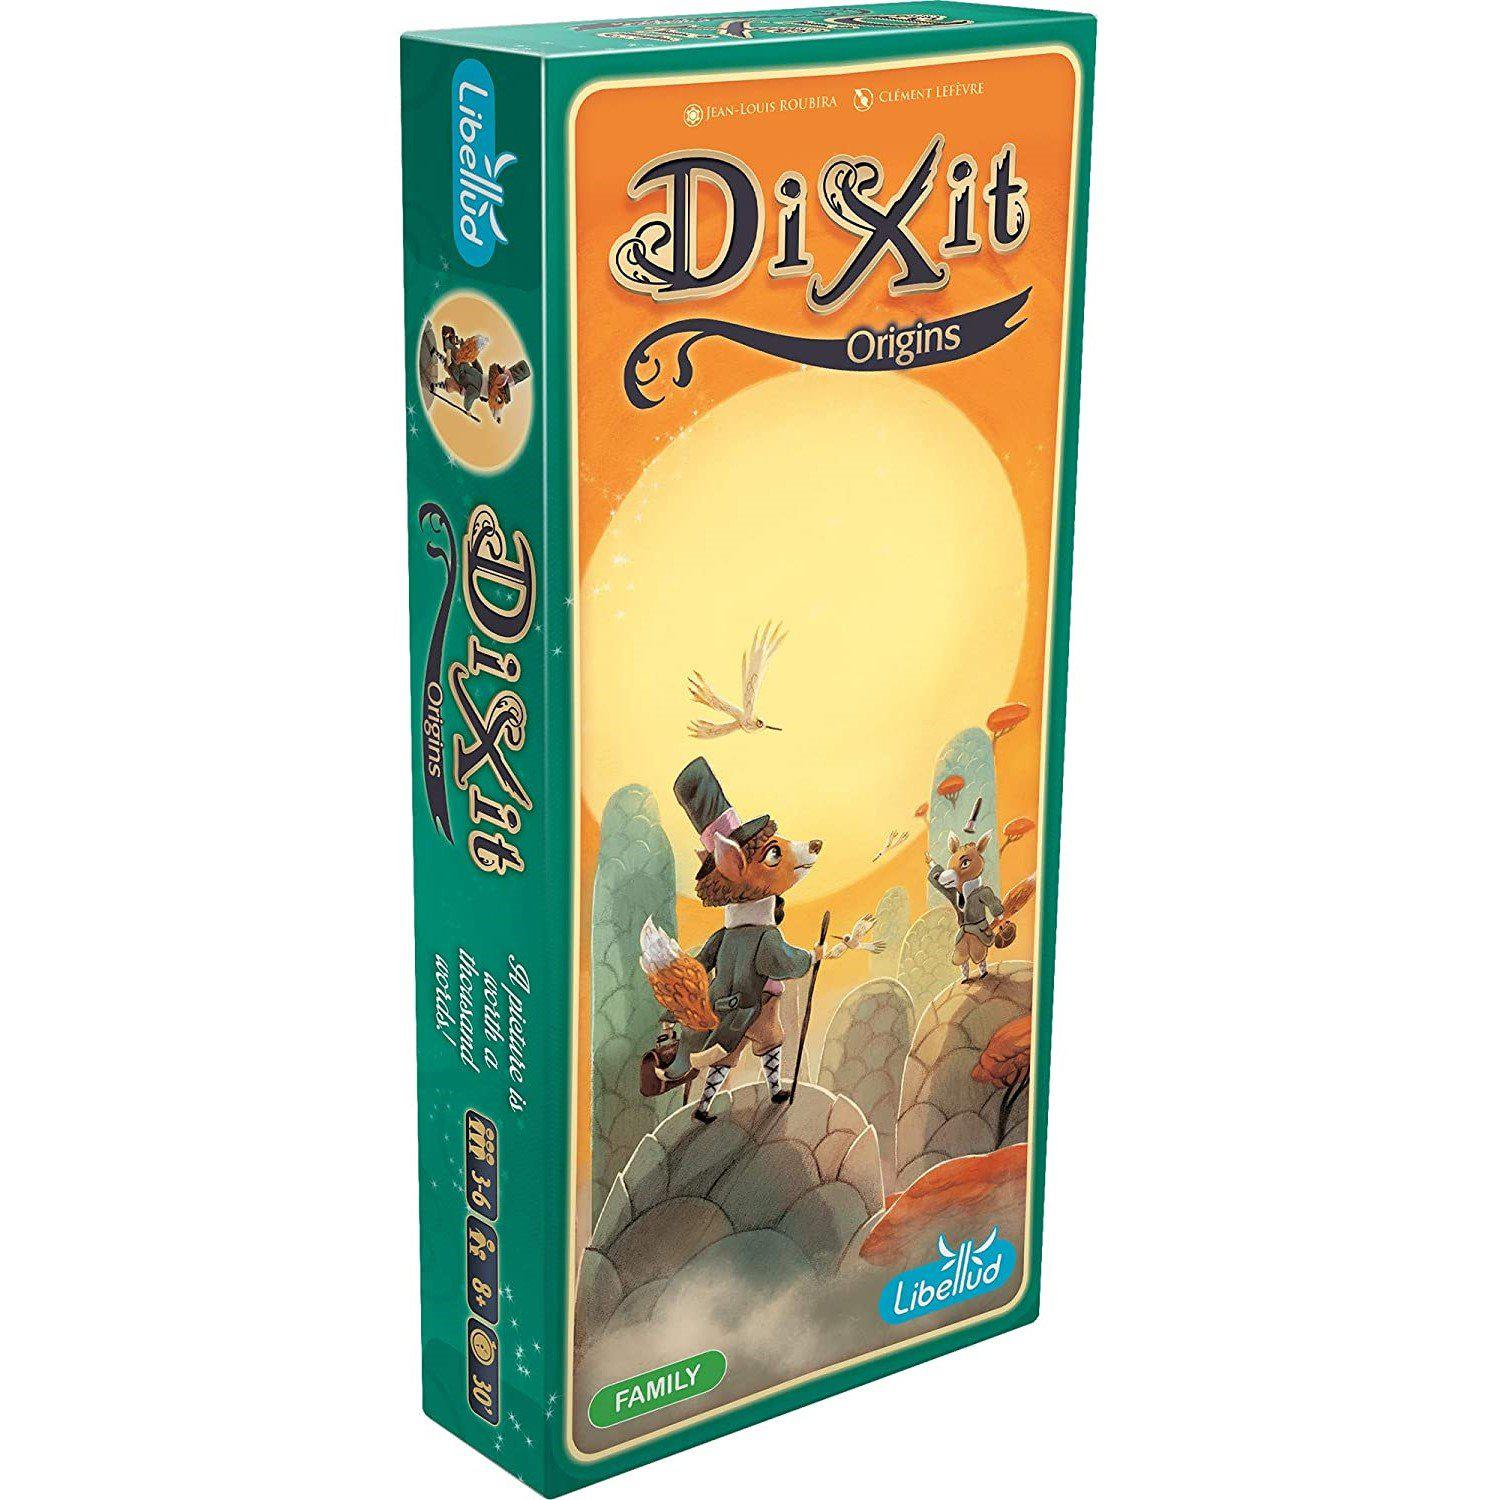 Dixit Origins (Expansion)